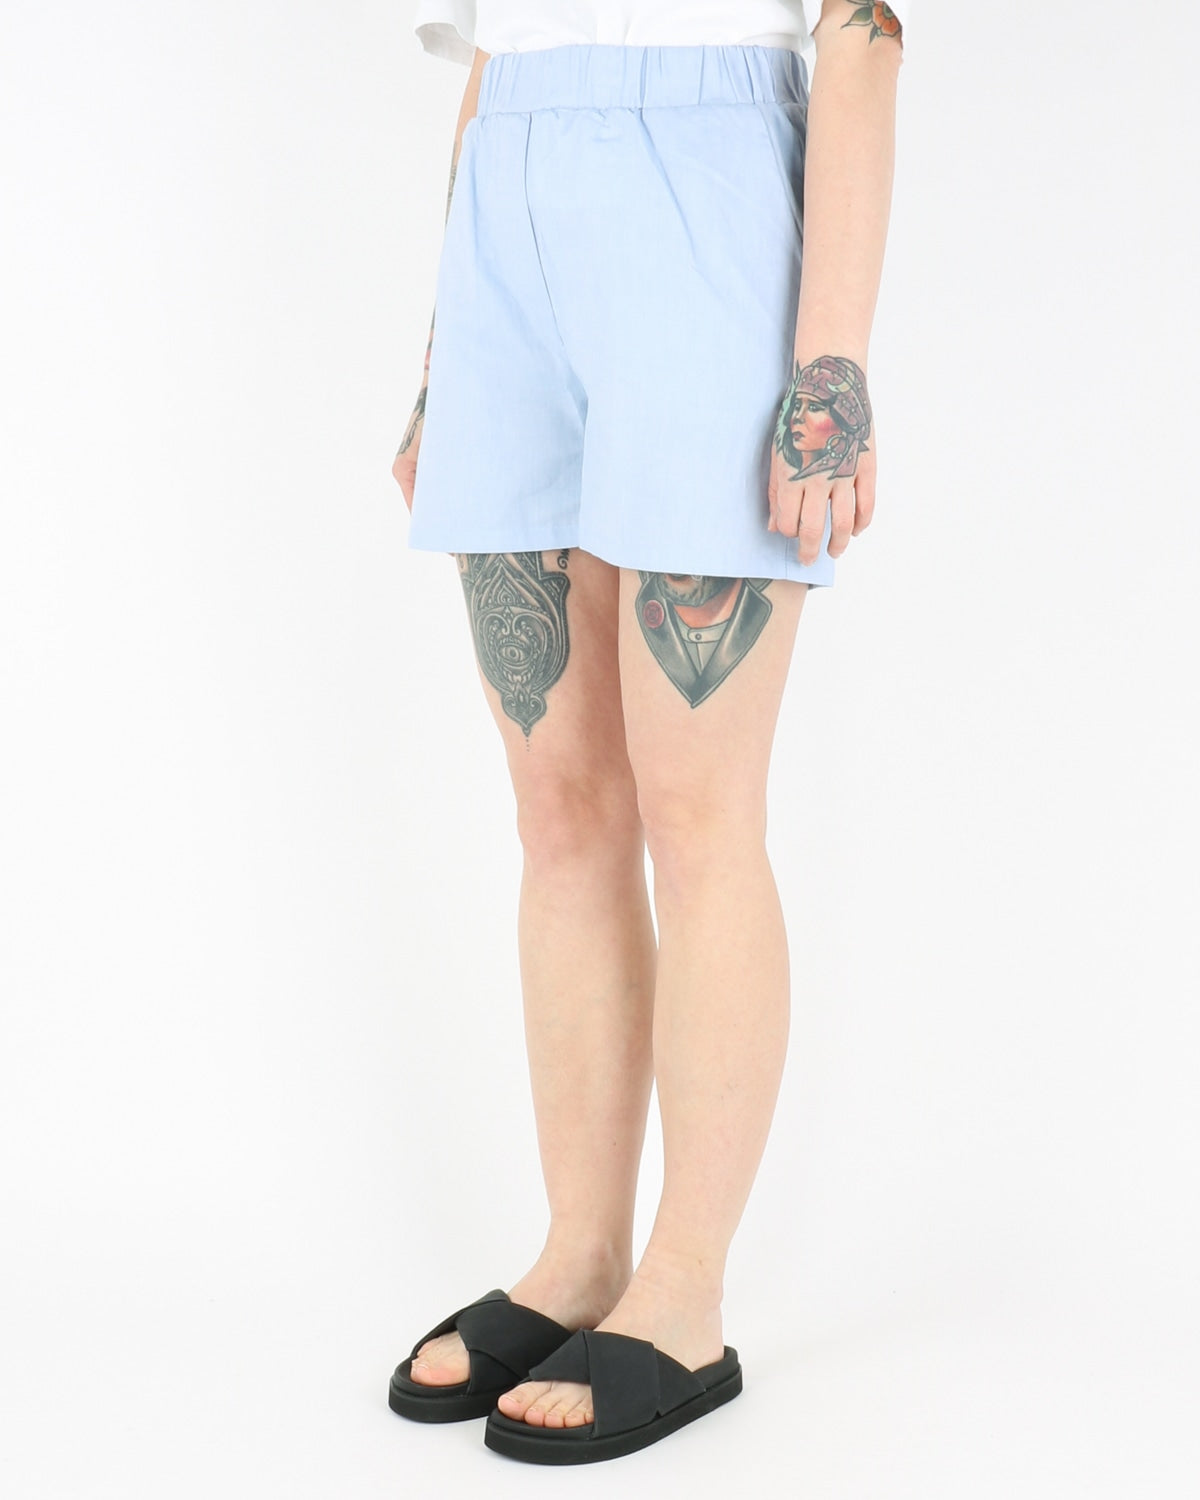 basic apparel_helle shorts_light blue_2_3